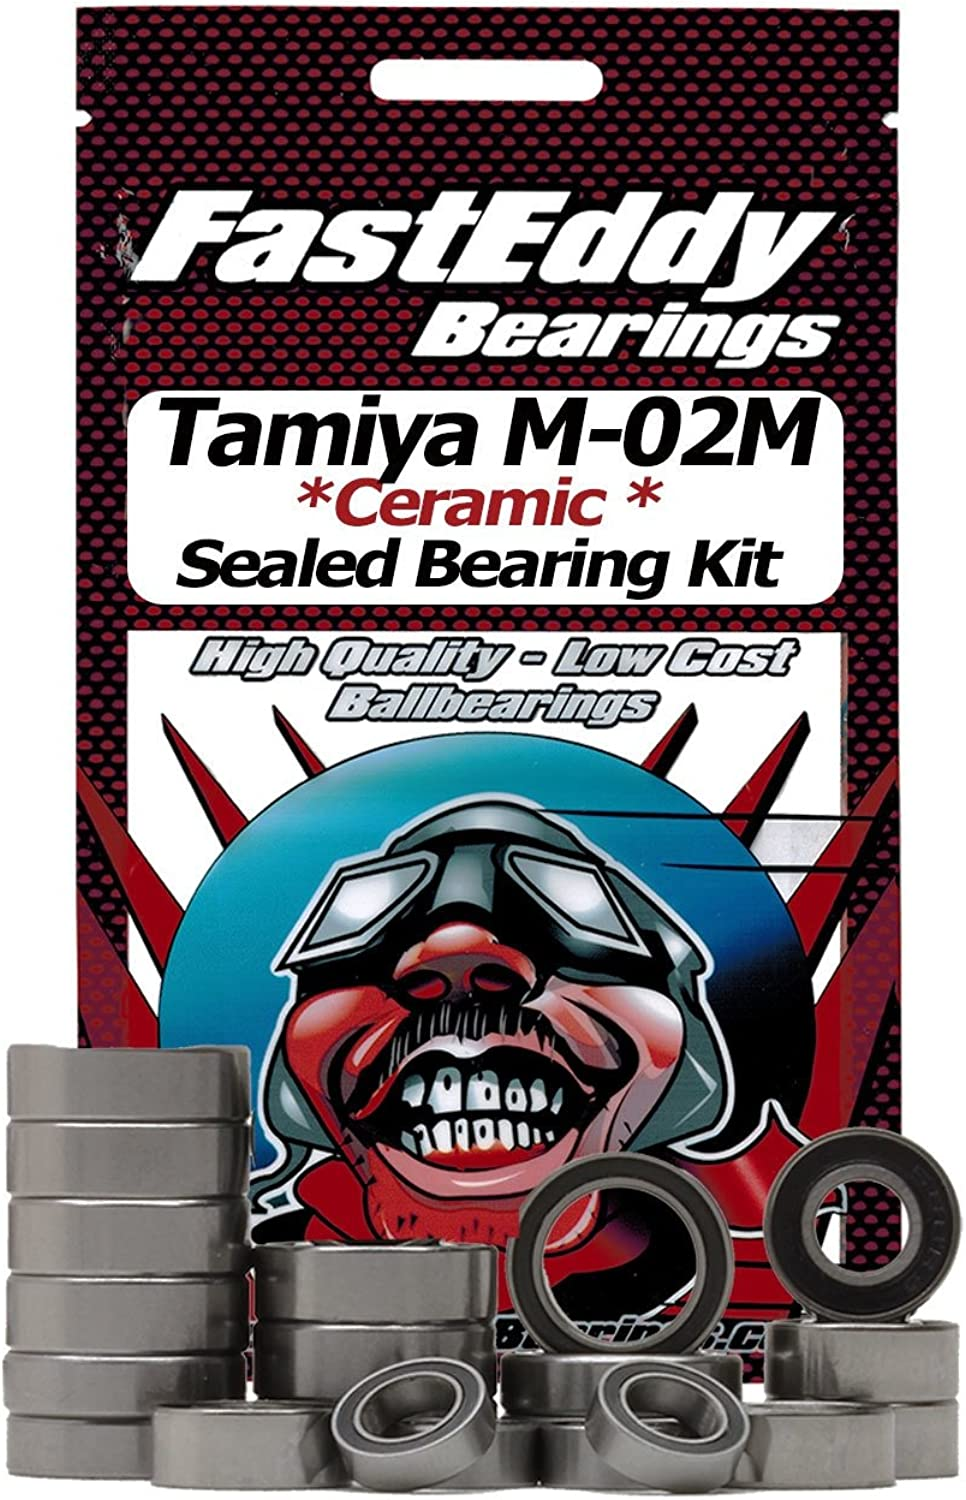 Tamiya M02M Chassis Ceramic Rubber Sealed Ball Bearing Kit for RC Cars